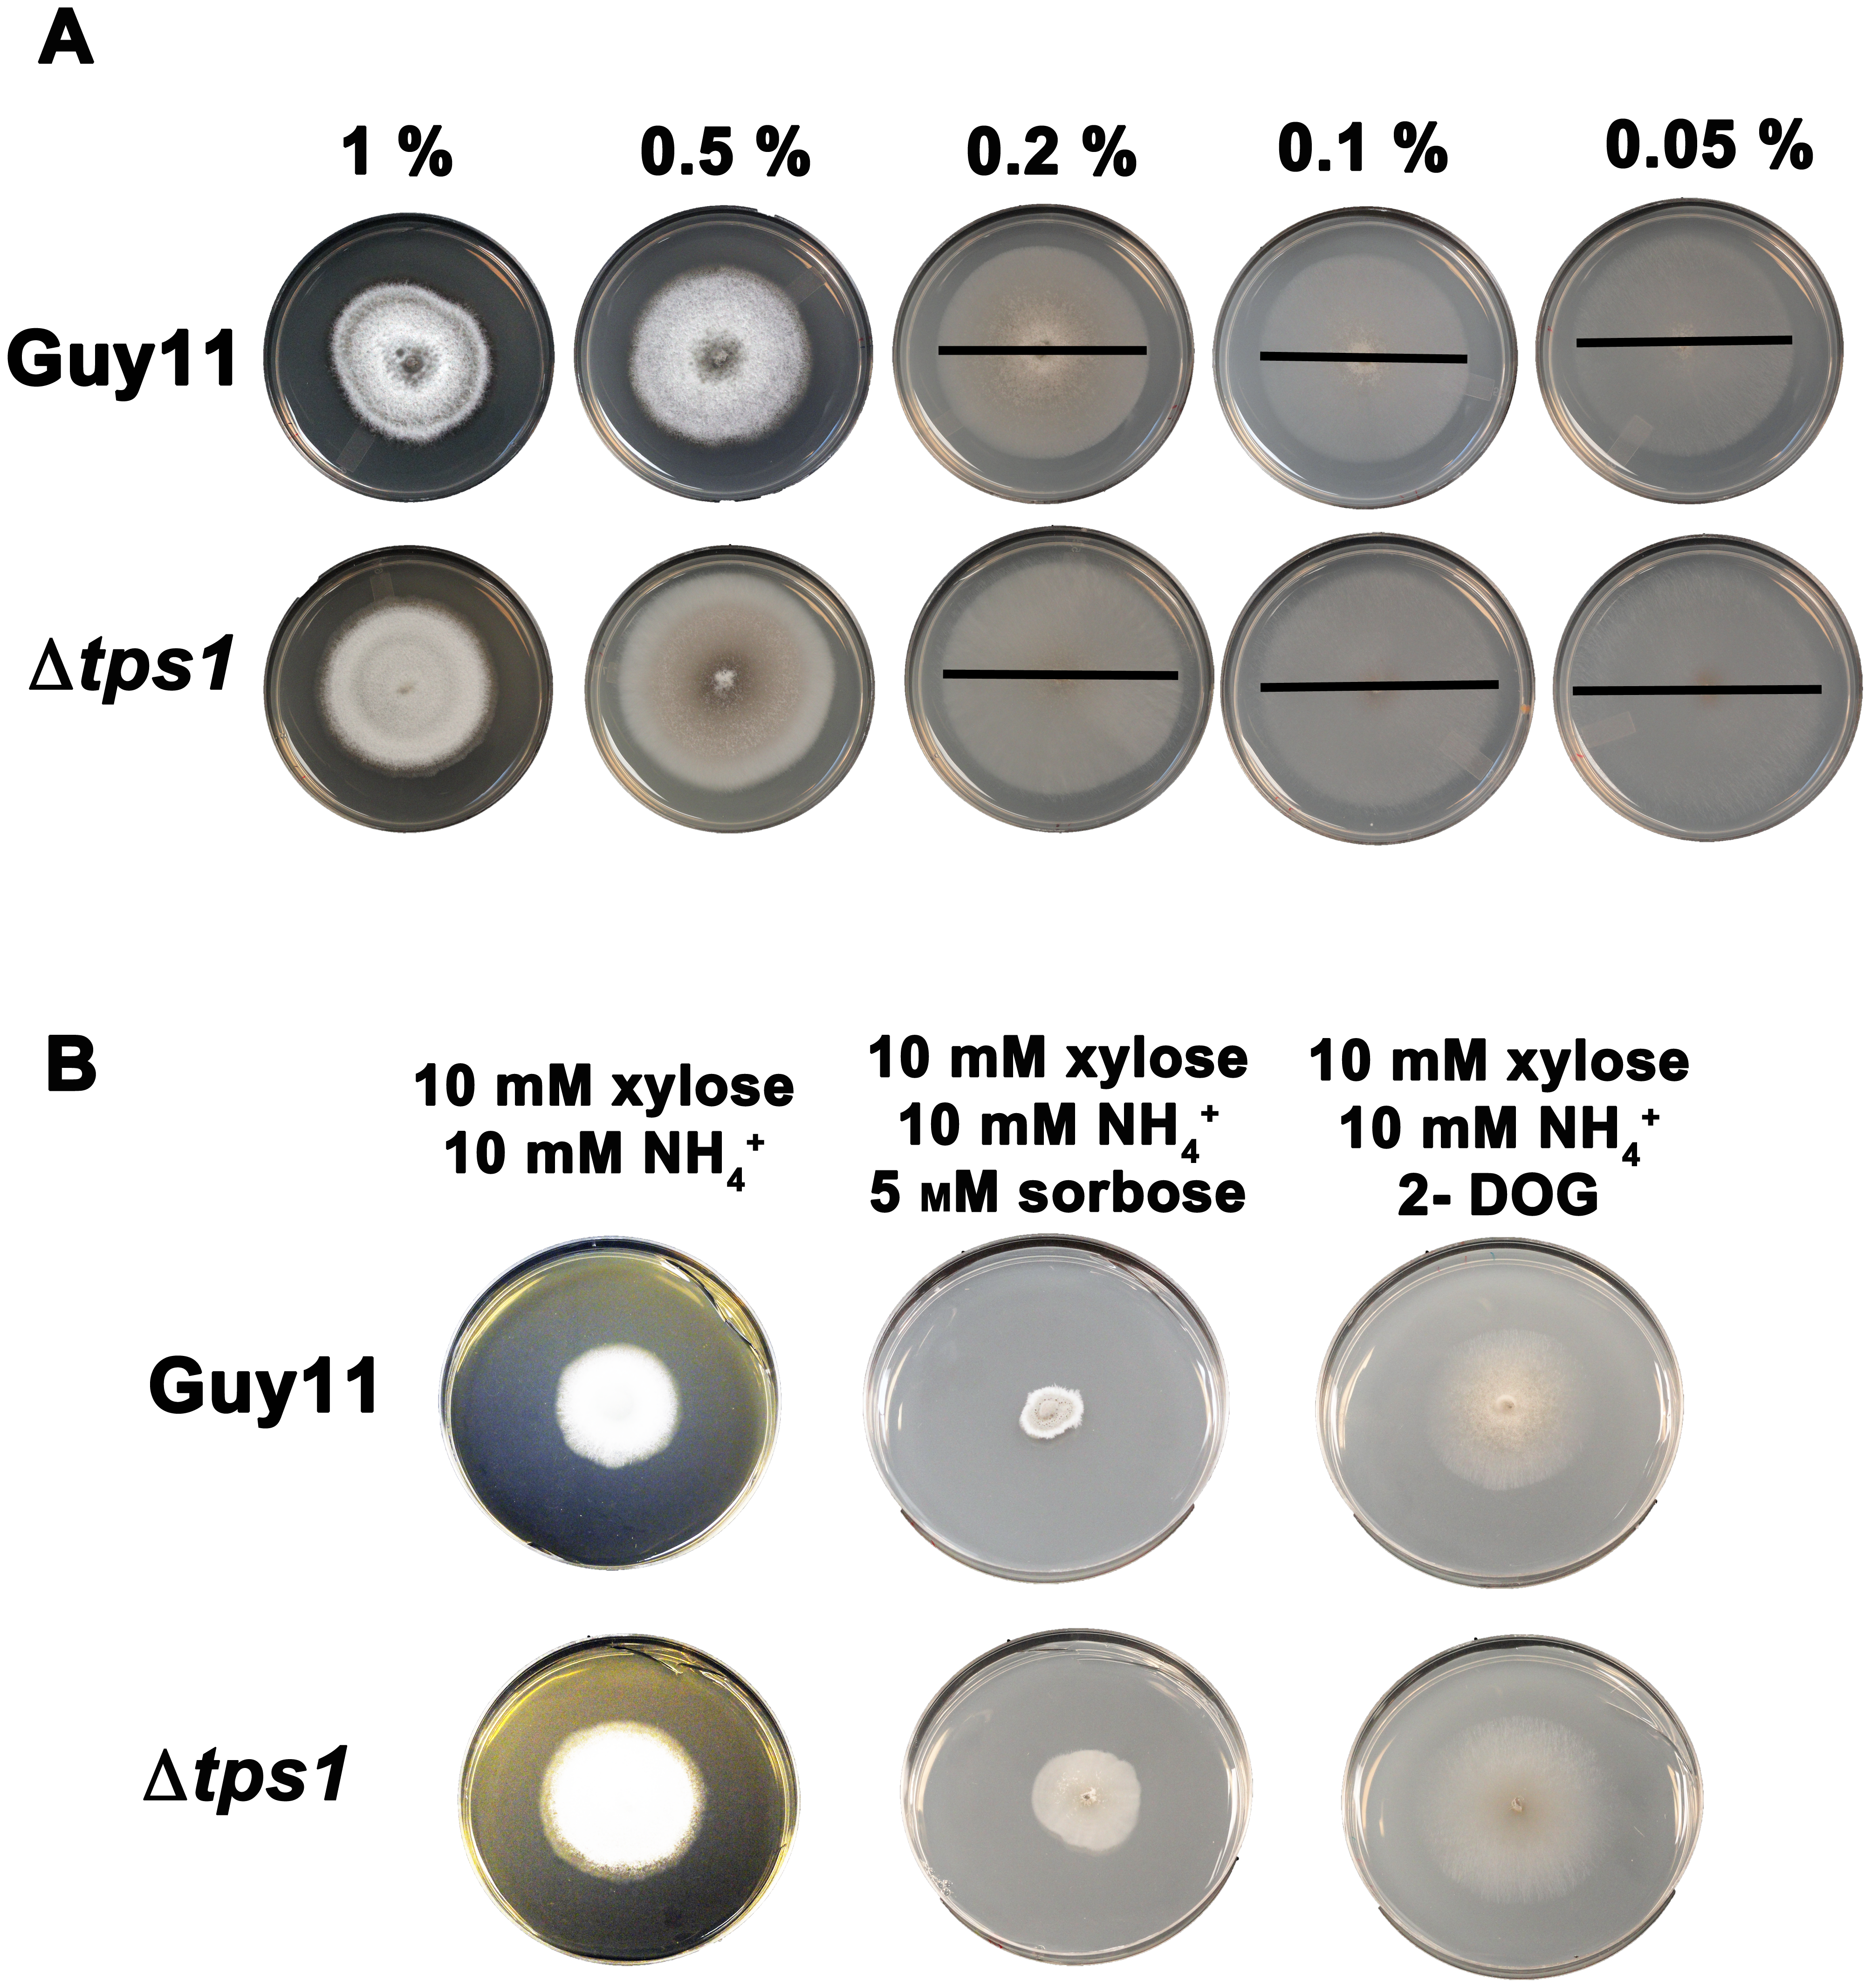 Glucose uptake and phosphorylation is not impaired in Δ<i>tps1</i> strains.